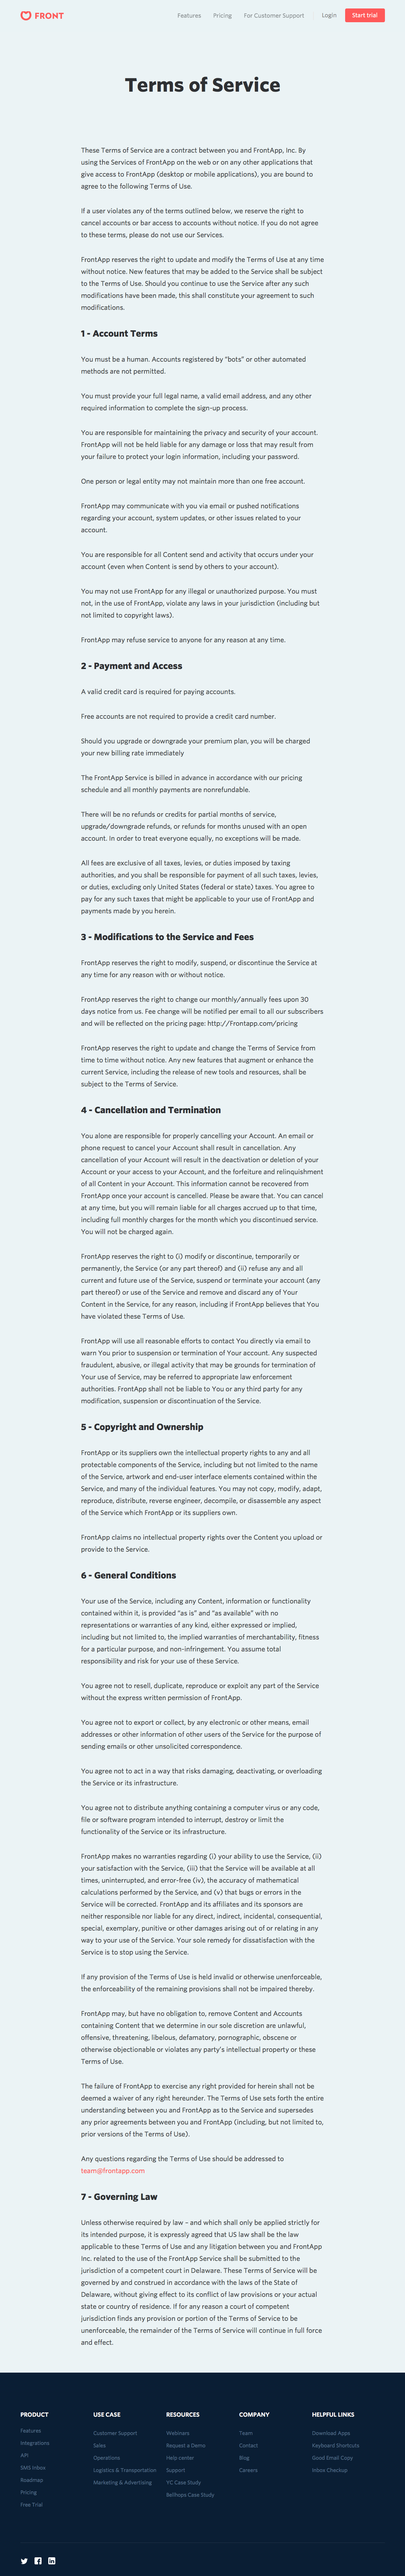 2019 Terms and Conditions Template Generator